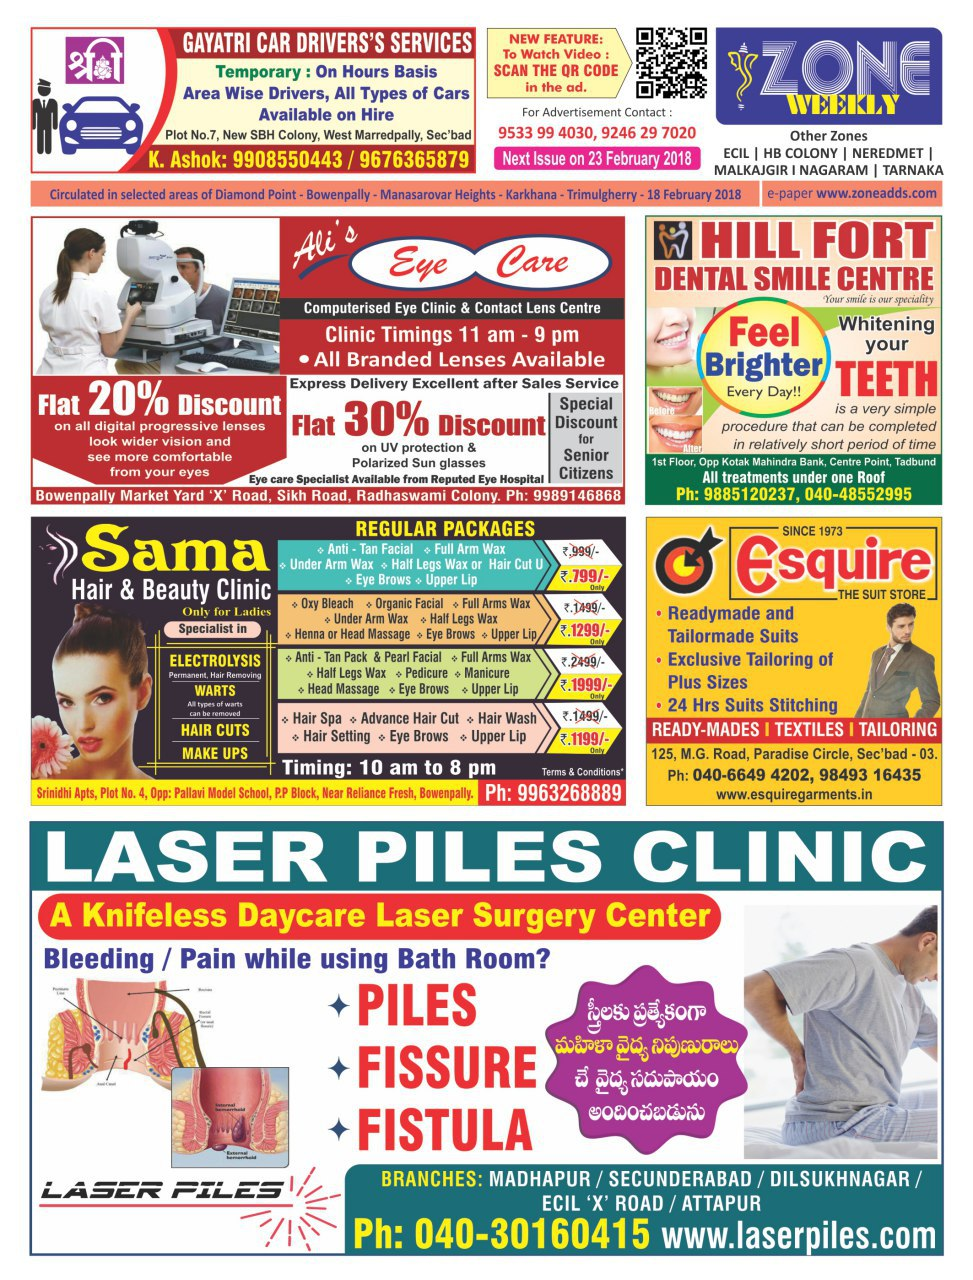 Best Laser Piles Clinic Hyderabad Ad